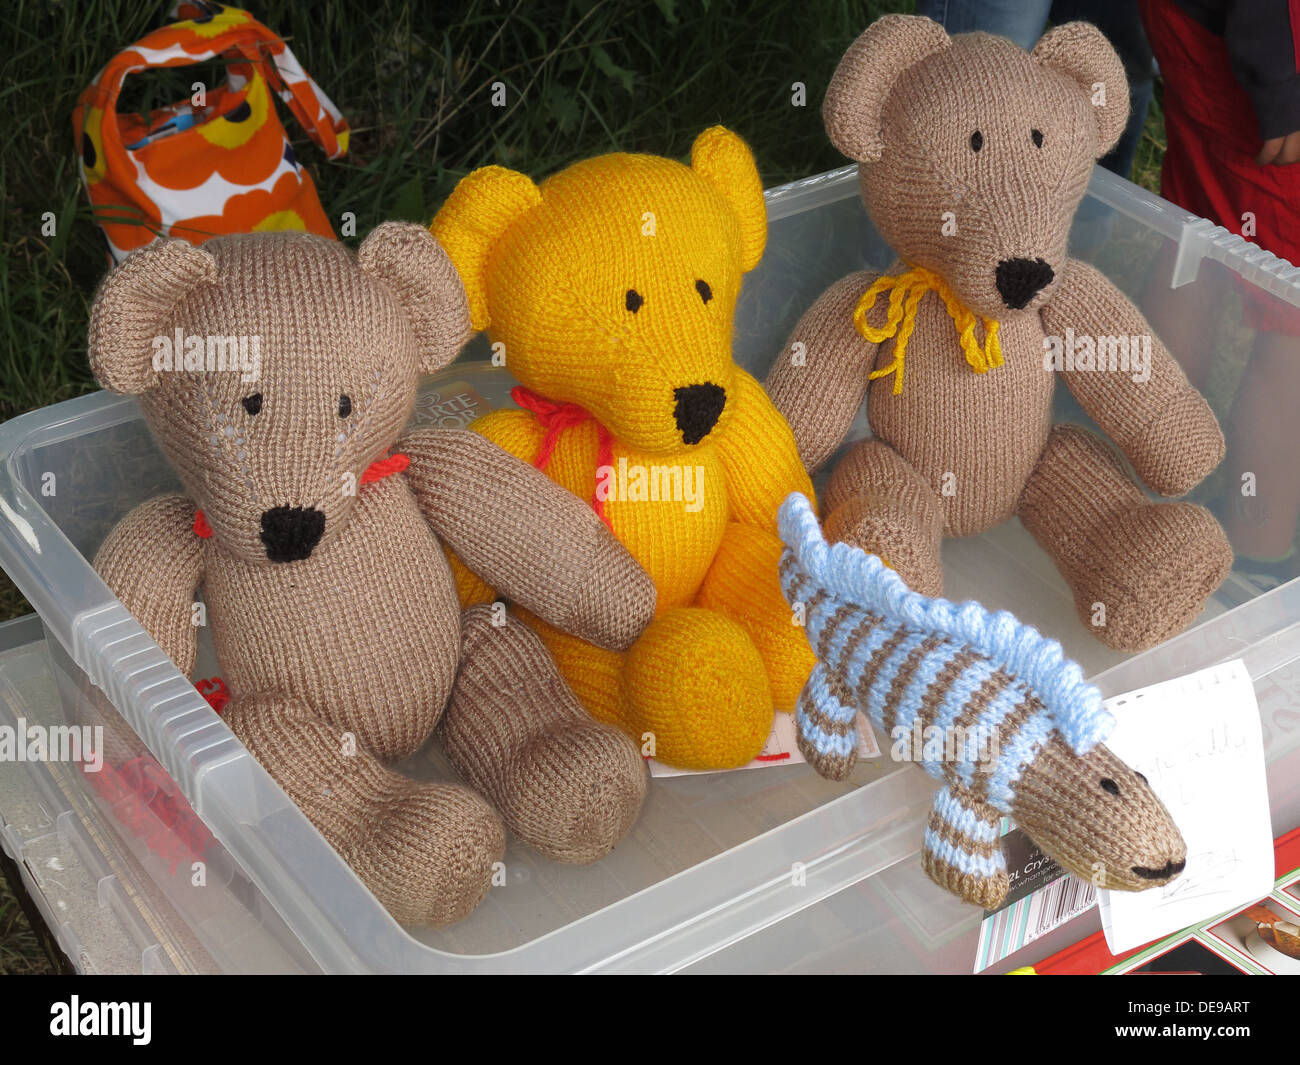 Hand knitted craft bears on sale at a charity fayre, Cheshire, England,UK - Stock Image